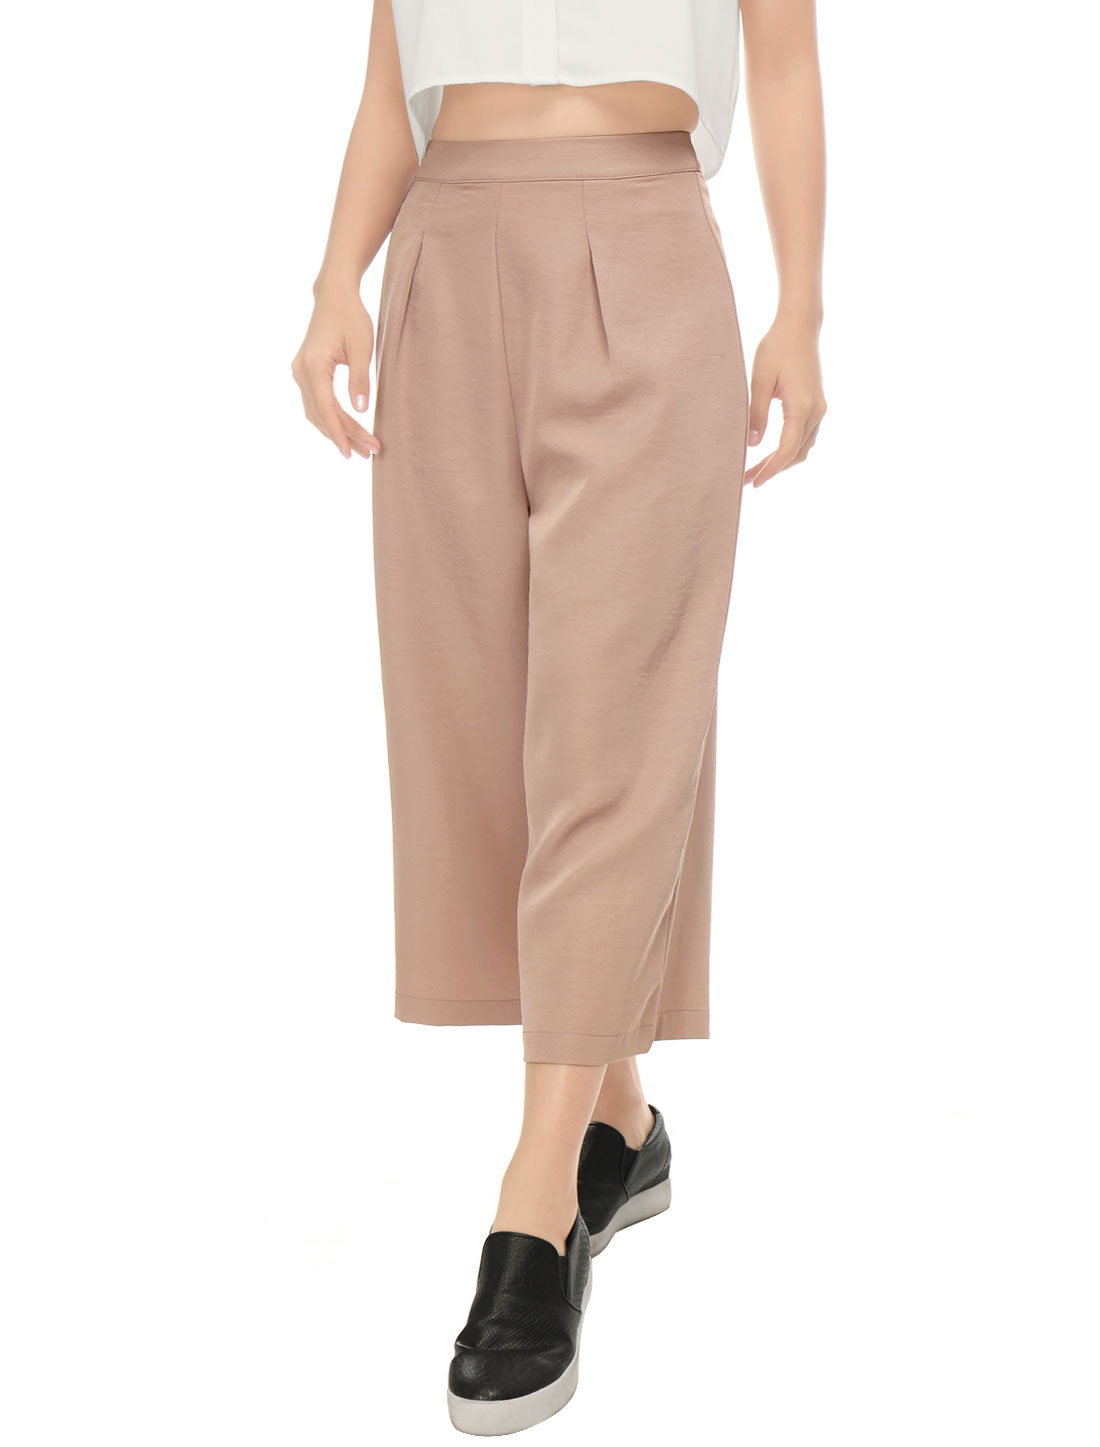 Women Concealed Zipper Side Loose Capris Culottes Pink XL